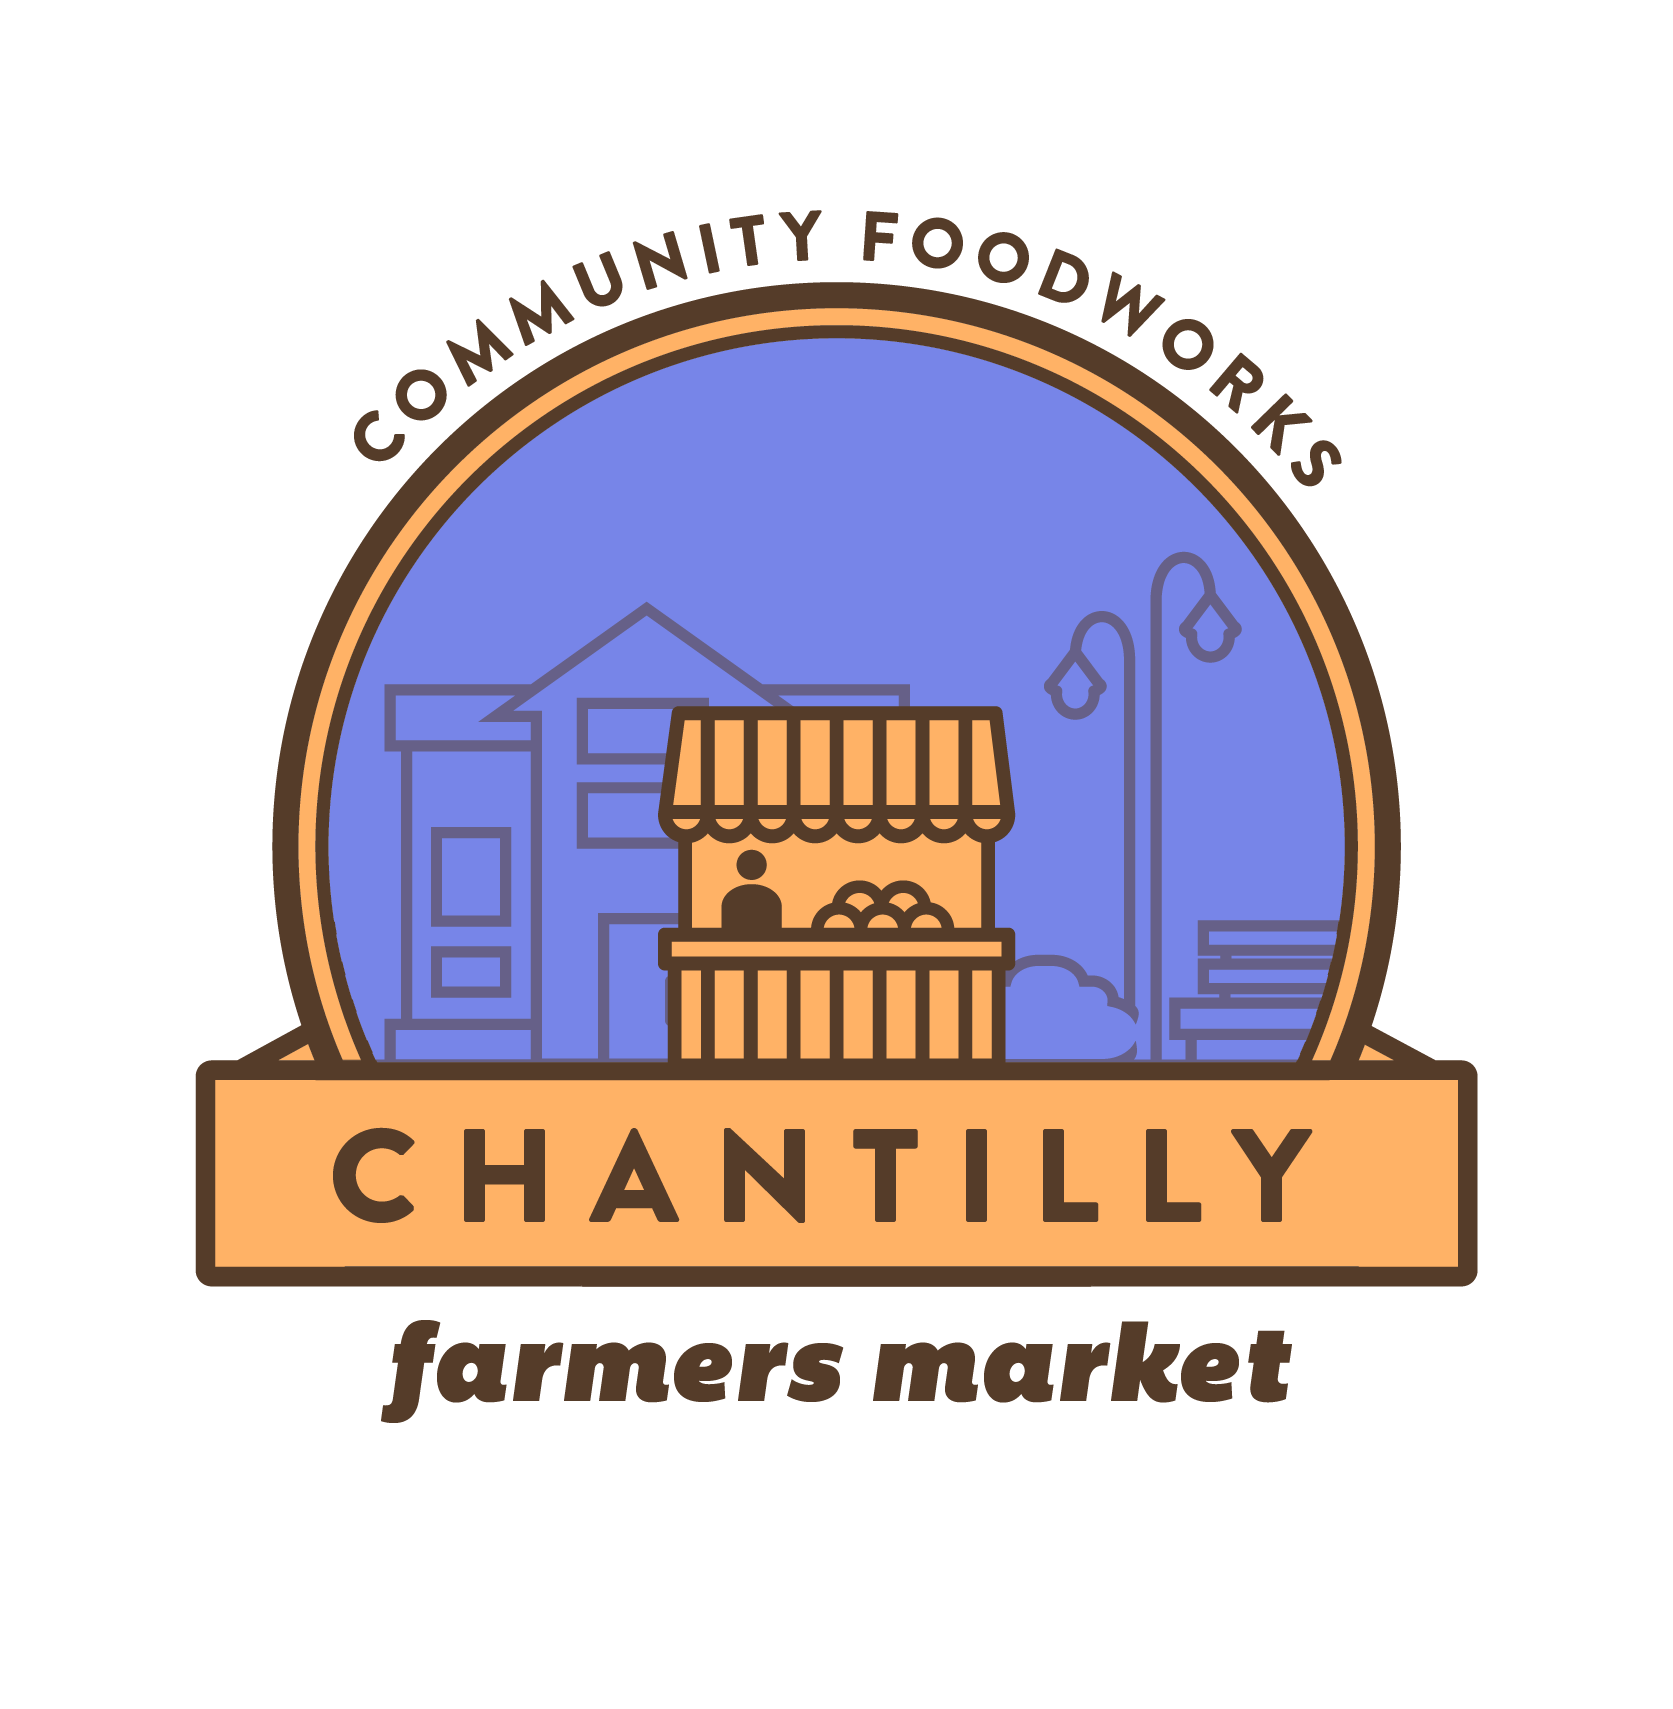 CFW_Farmers-Markets_Chantilly.png